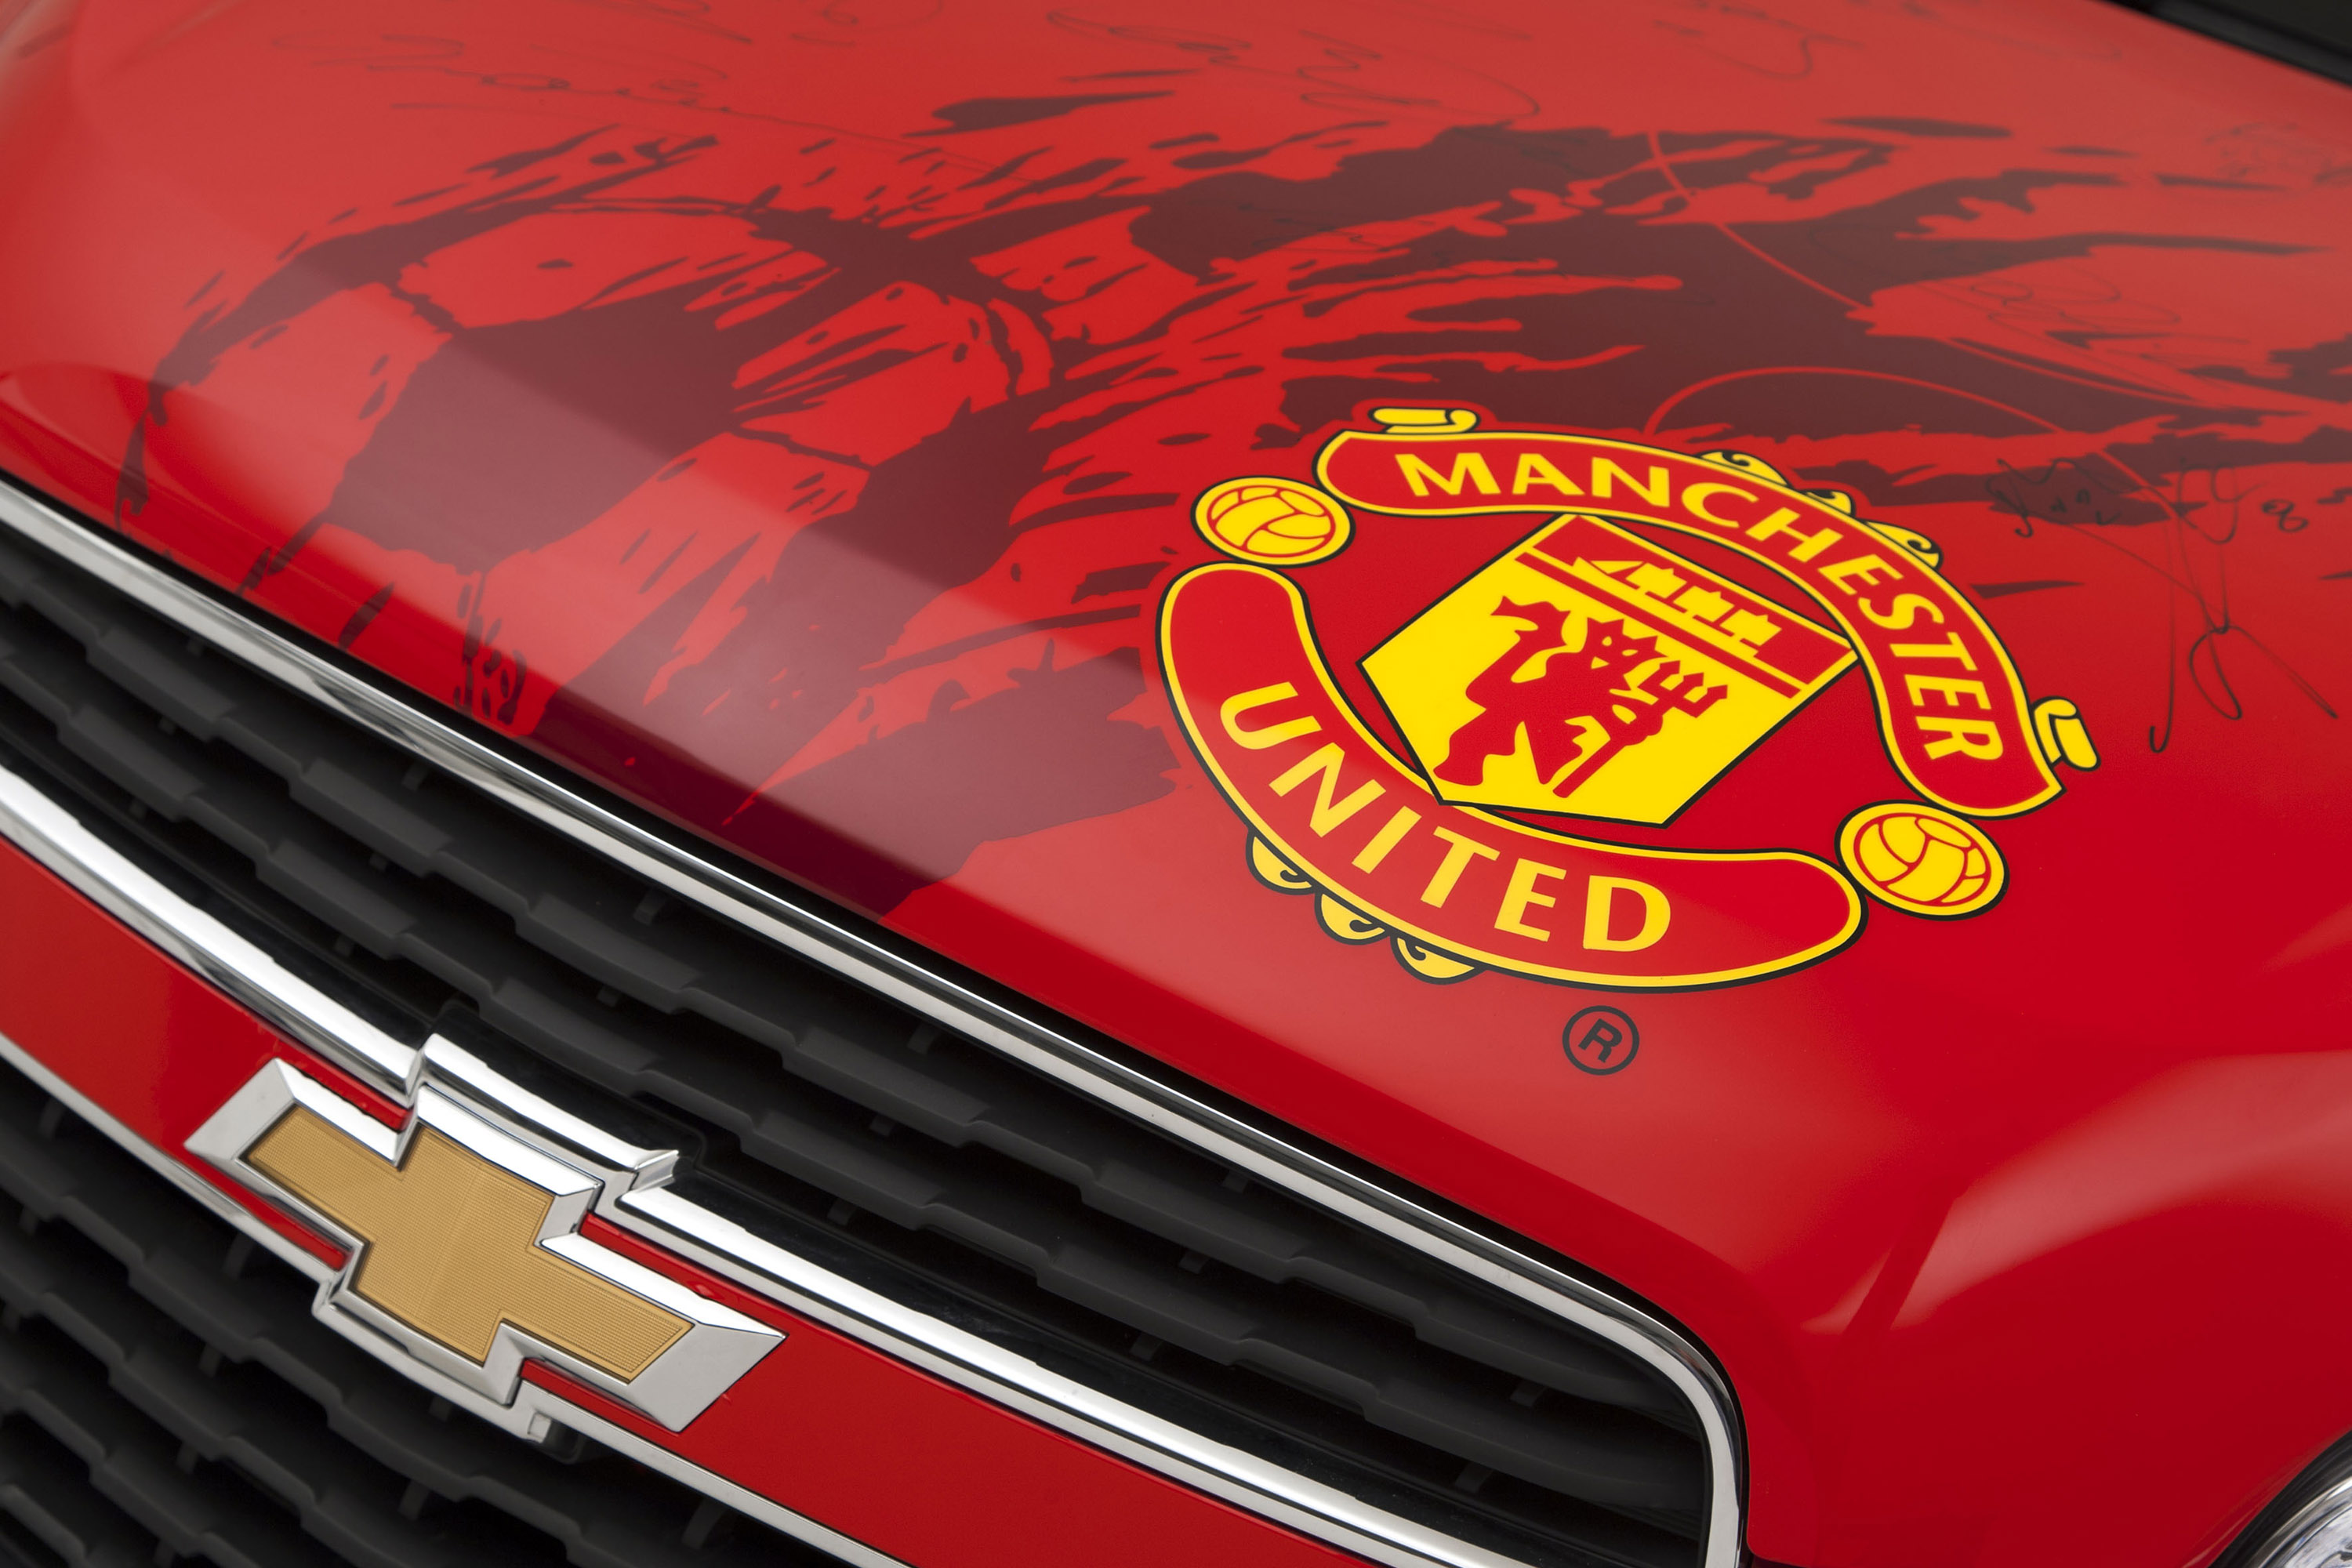 Manchester United Themed Chevrolet Trax Auction